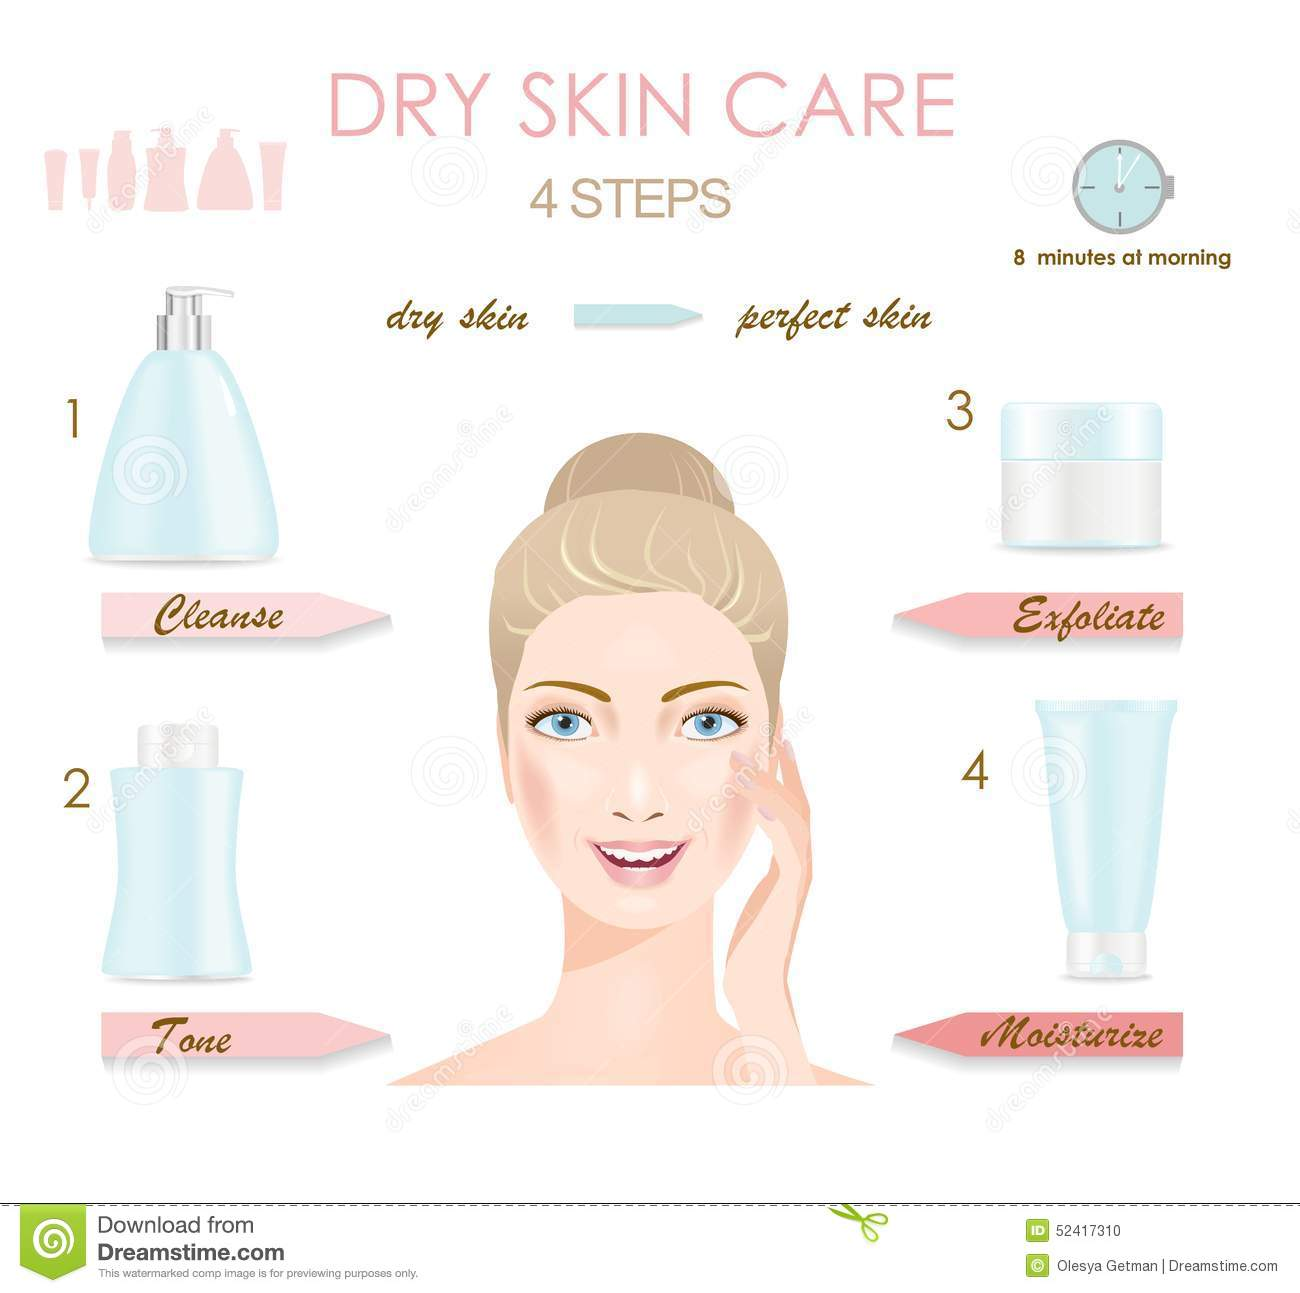 Best All Natural Makeup For Dry Skin